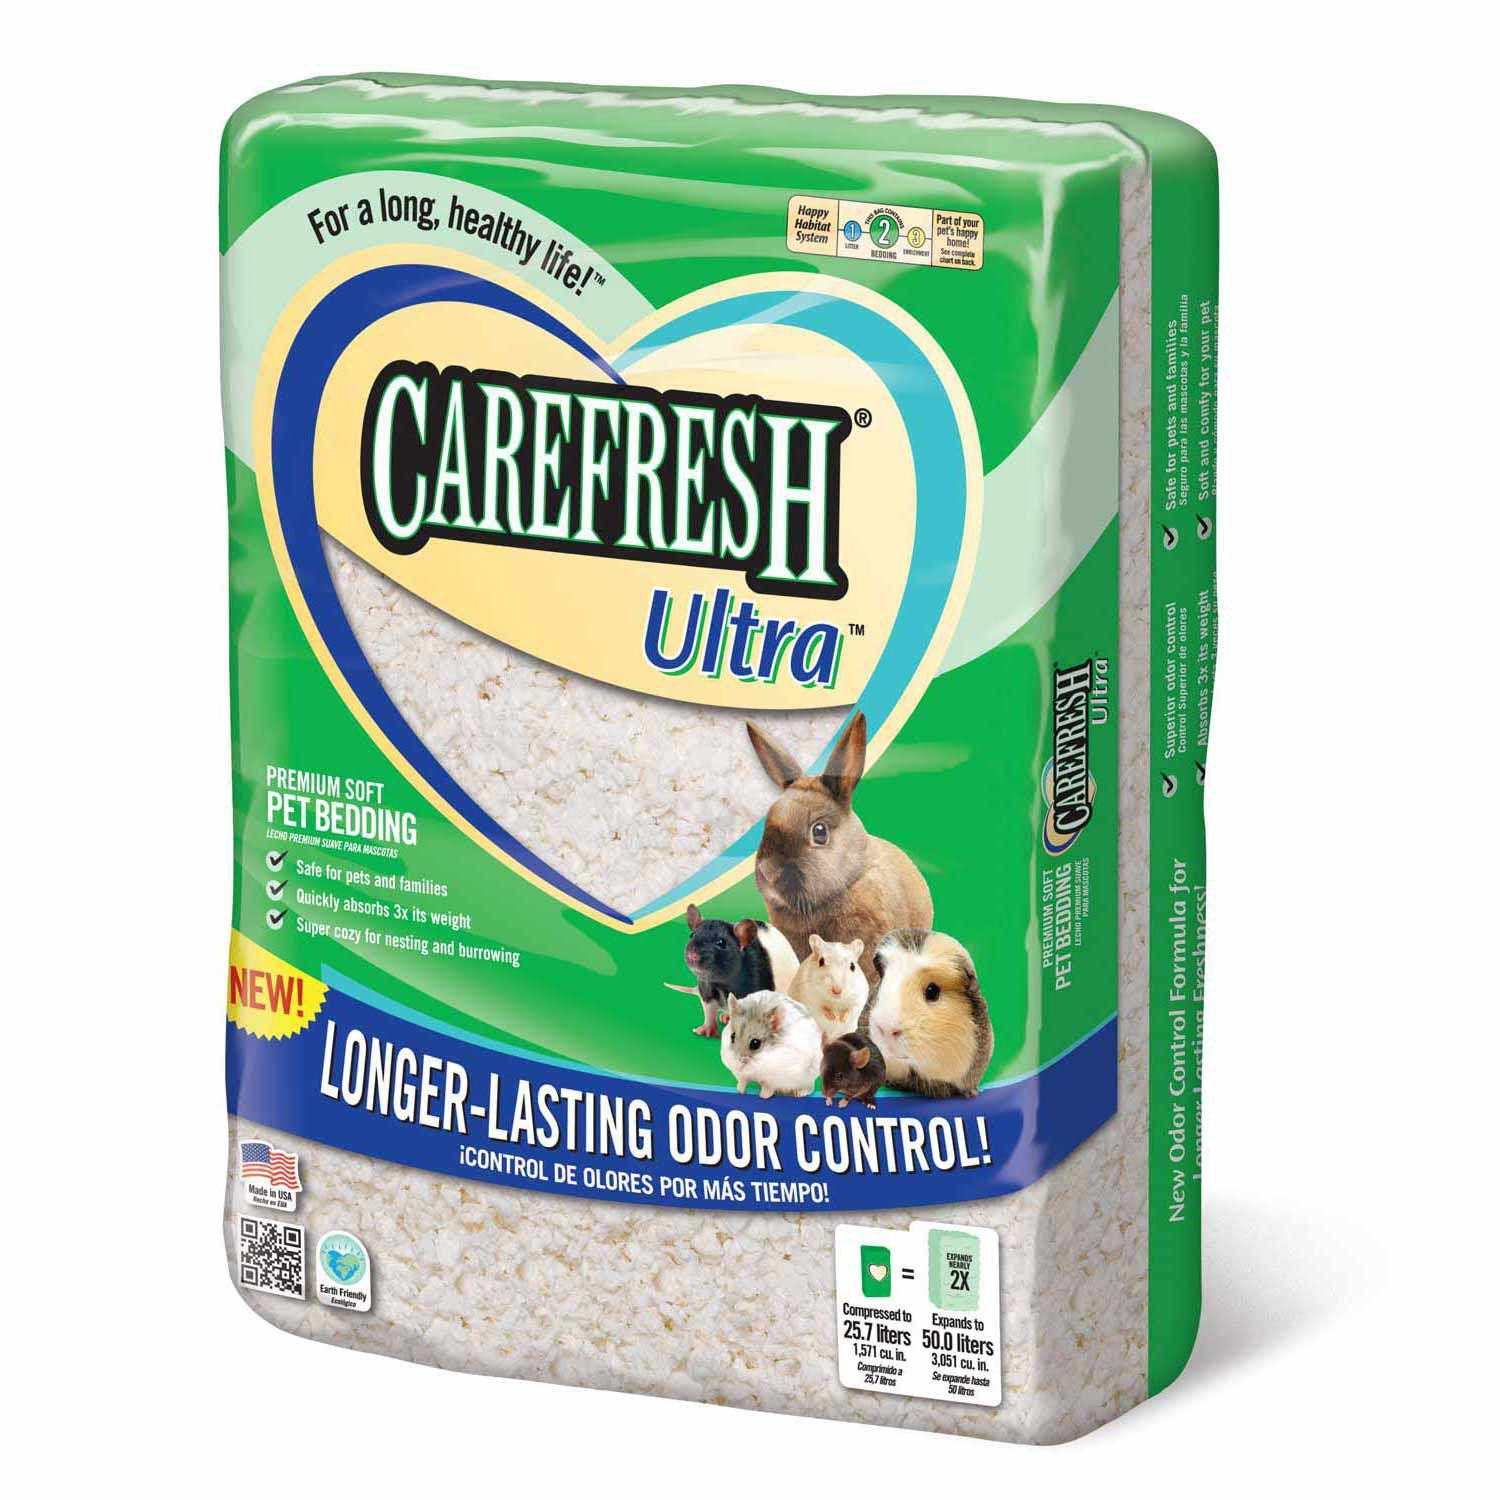 Carefresh White Small Pet Bedding, 50 Liter Pet beds